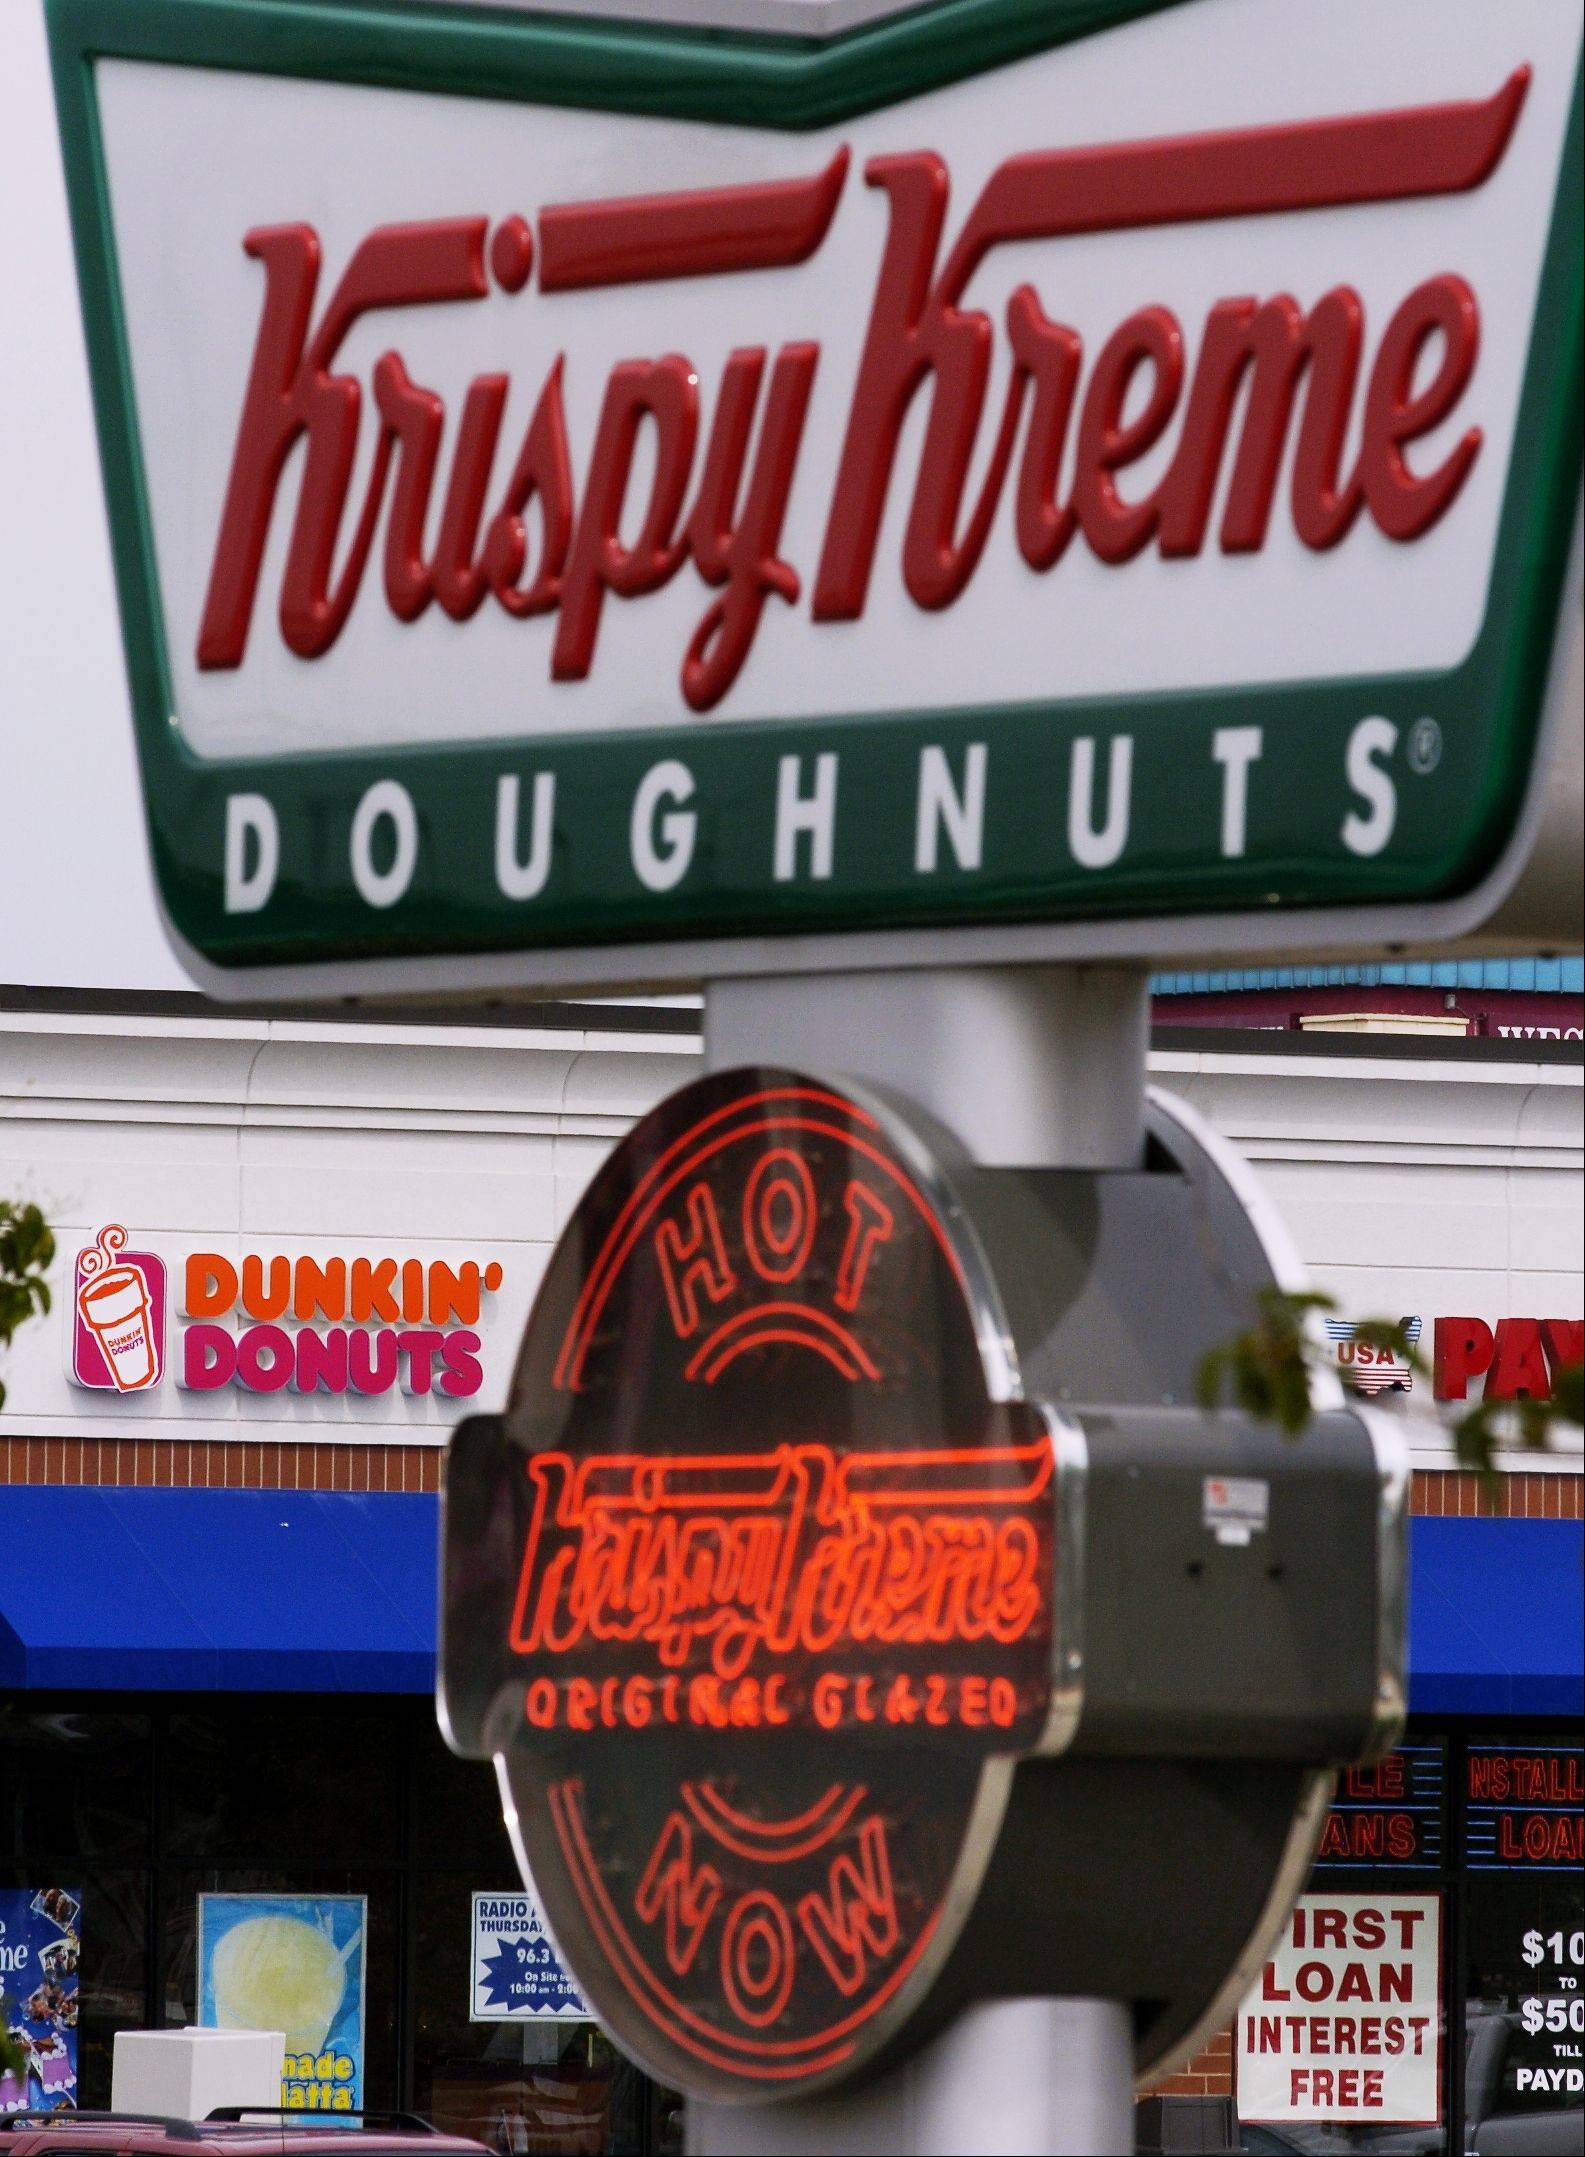 Krispy Kreme returned to profit in fiscal 2011 after six straight years of losses, data compiled by Bloomberg show.